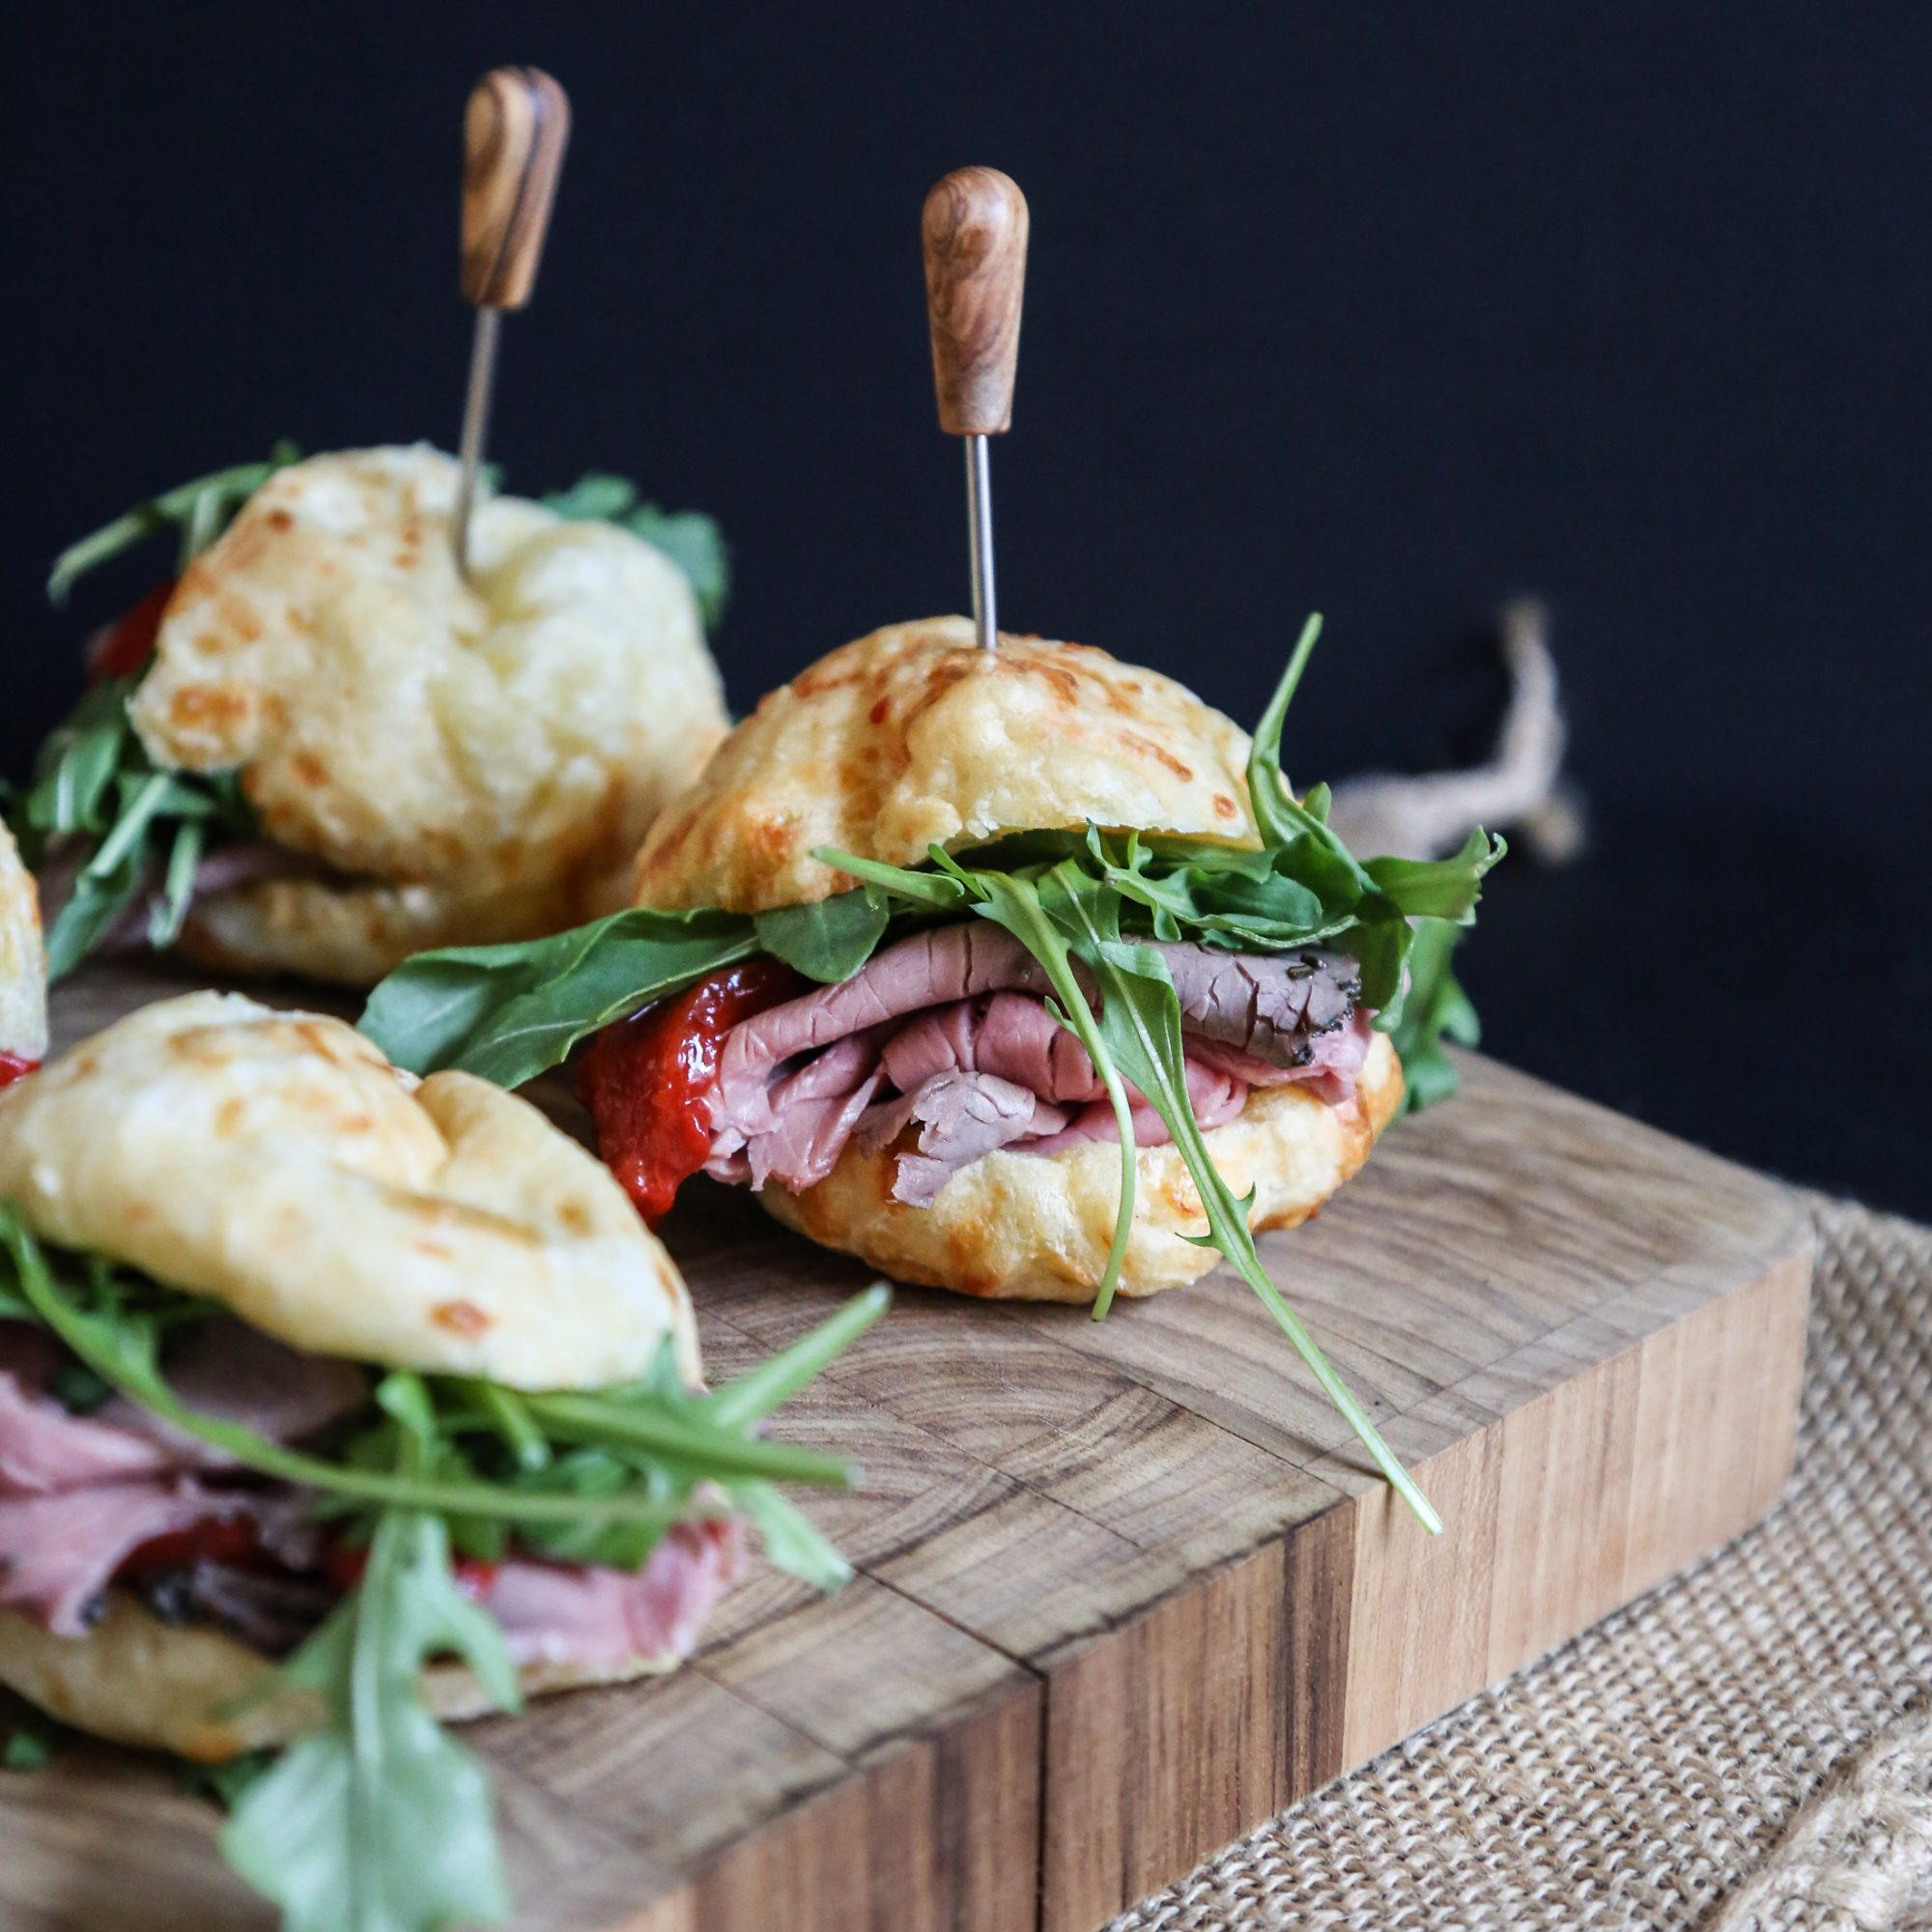 Brazilian Cheese Bread Sliders with Roast Beef, Red Peppers and Arugula